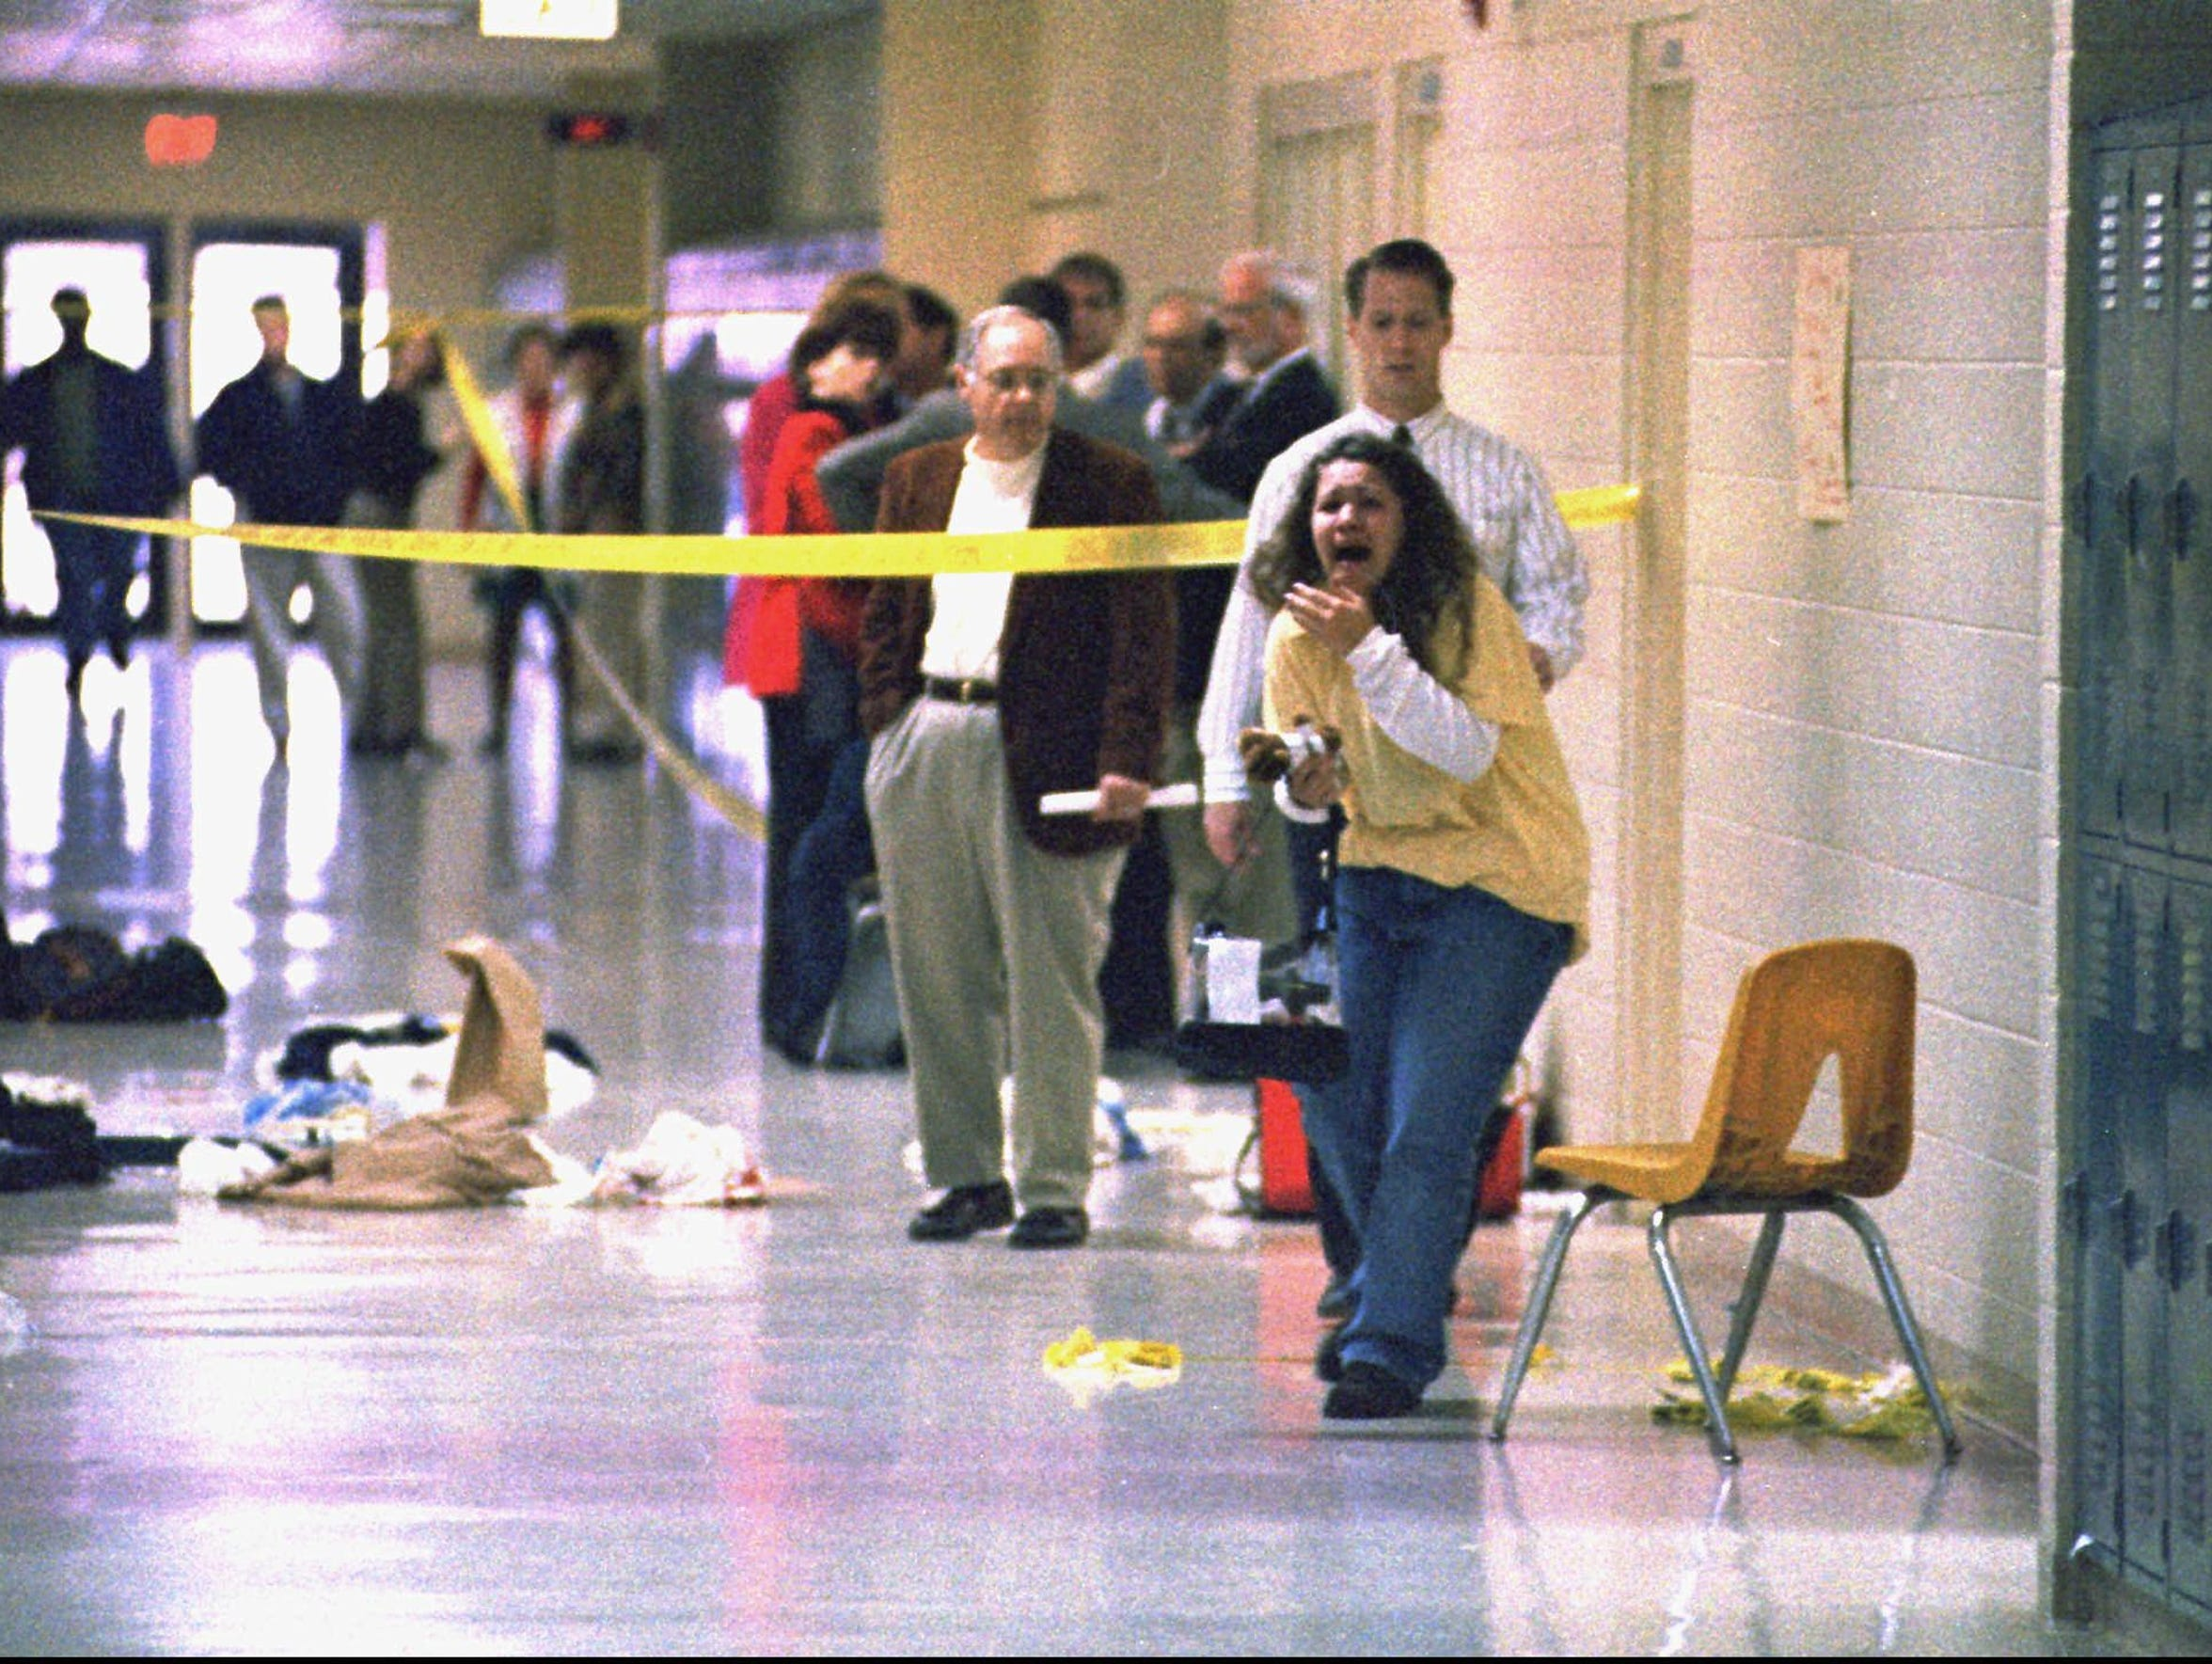 A student screams at the Heath High School shooting scene on Dec. 1, 1997, during which three students were killed. Hollan Holm was among the five students injured. Holm, then a 14-year-old, said he stills deals daily with the effects of having survived a school shooting. Holm tells his story in the final episode of the podcast Aftermath, produced by USA Today in collaboration with The Trace. (File)